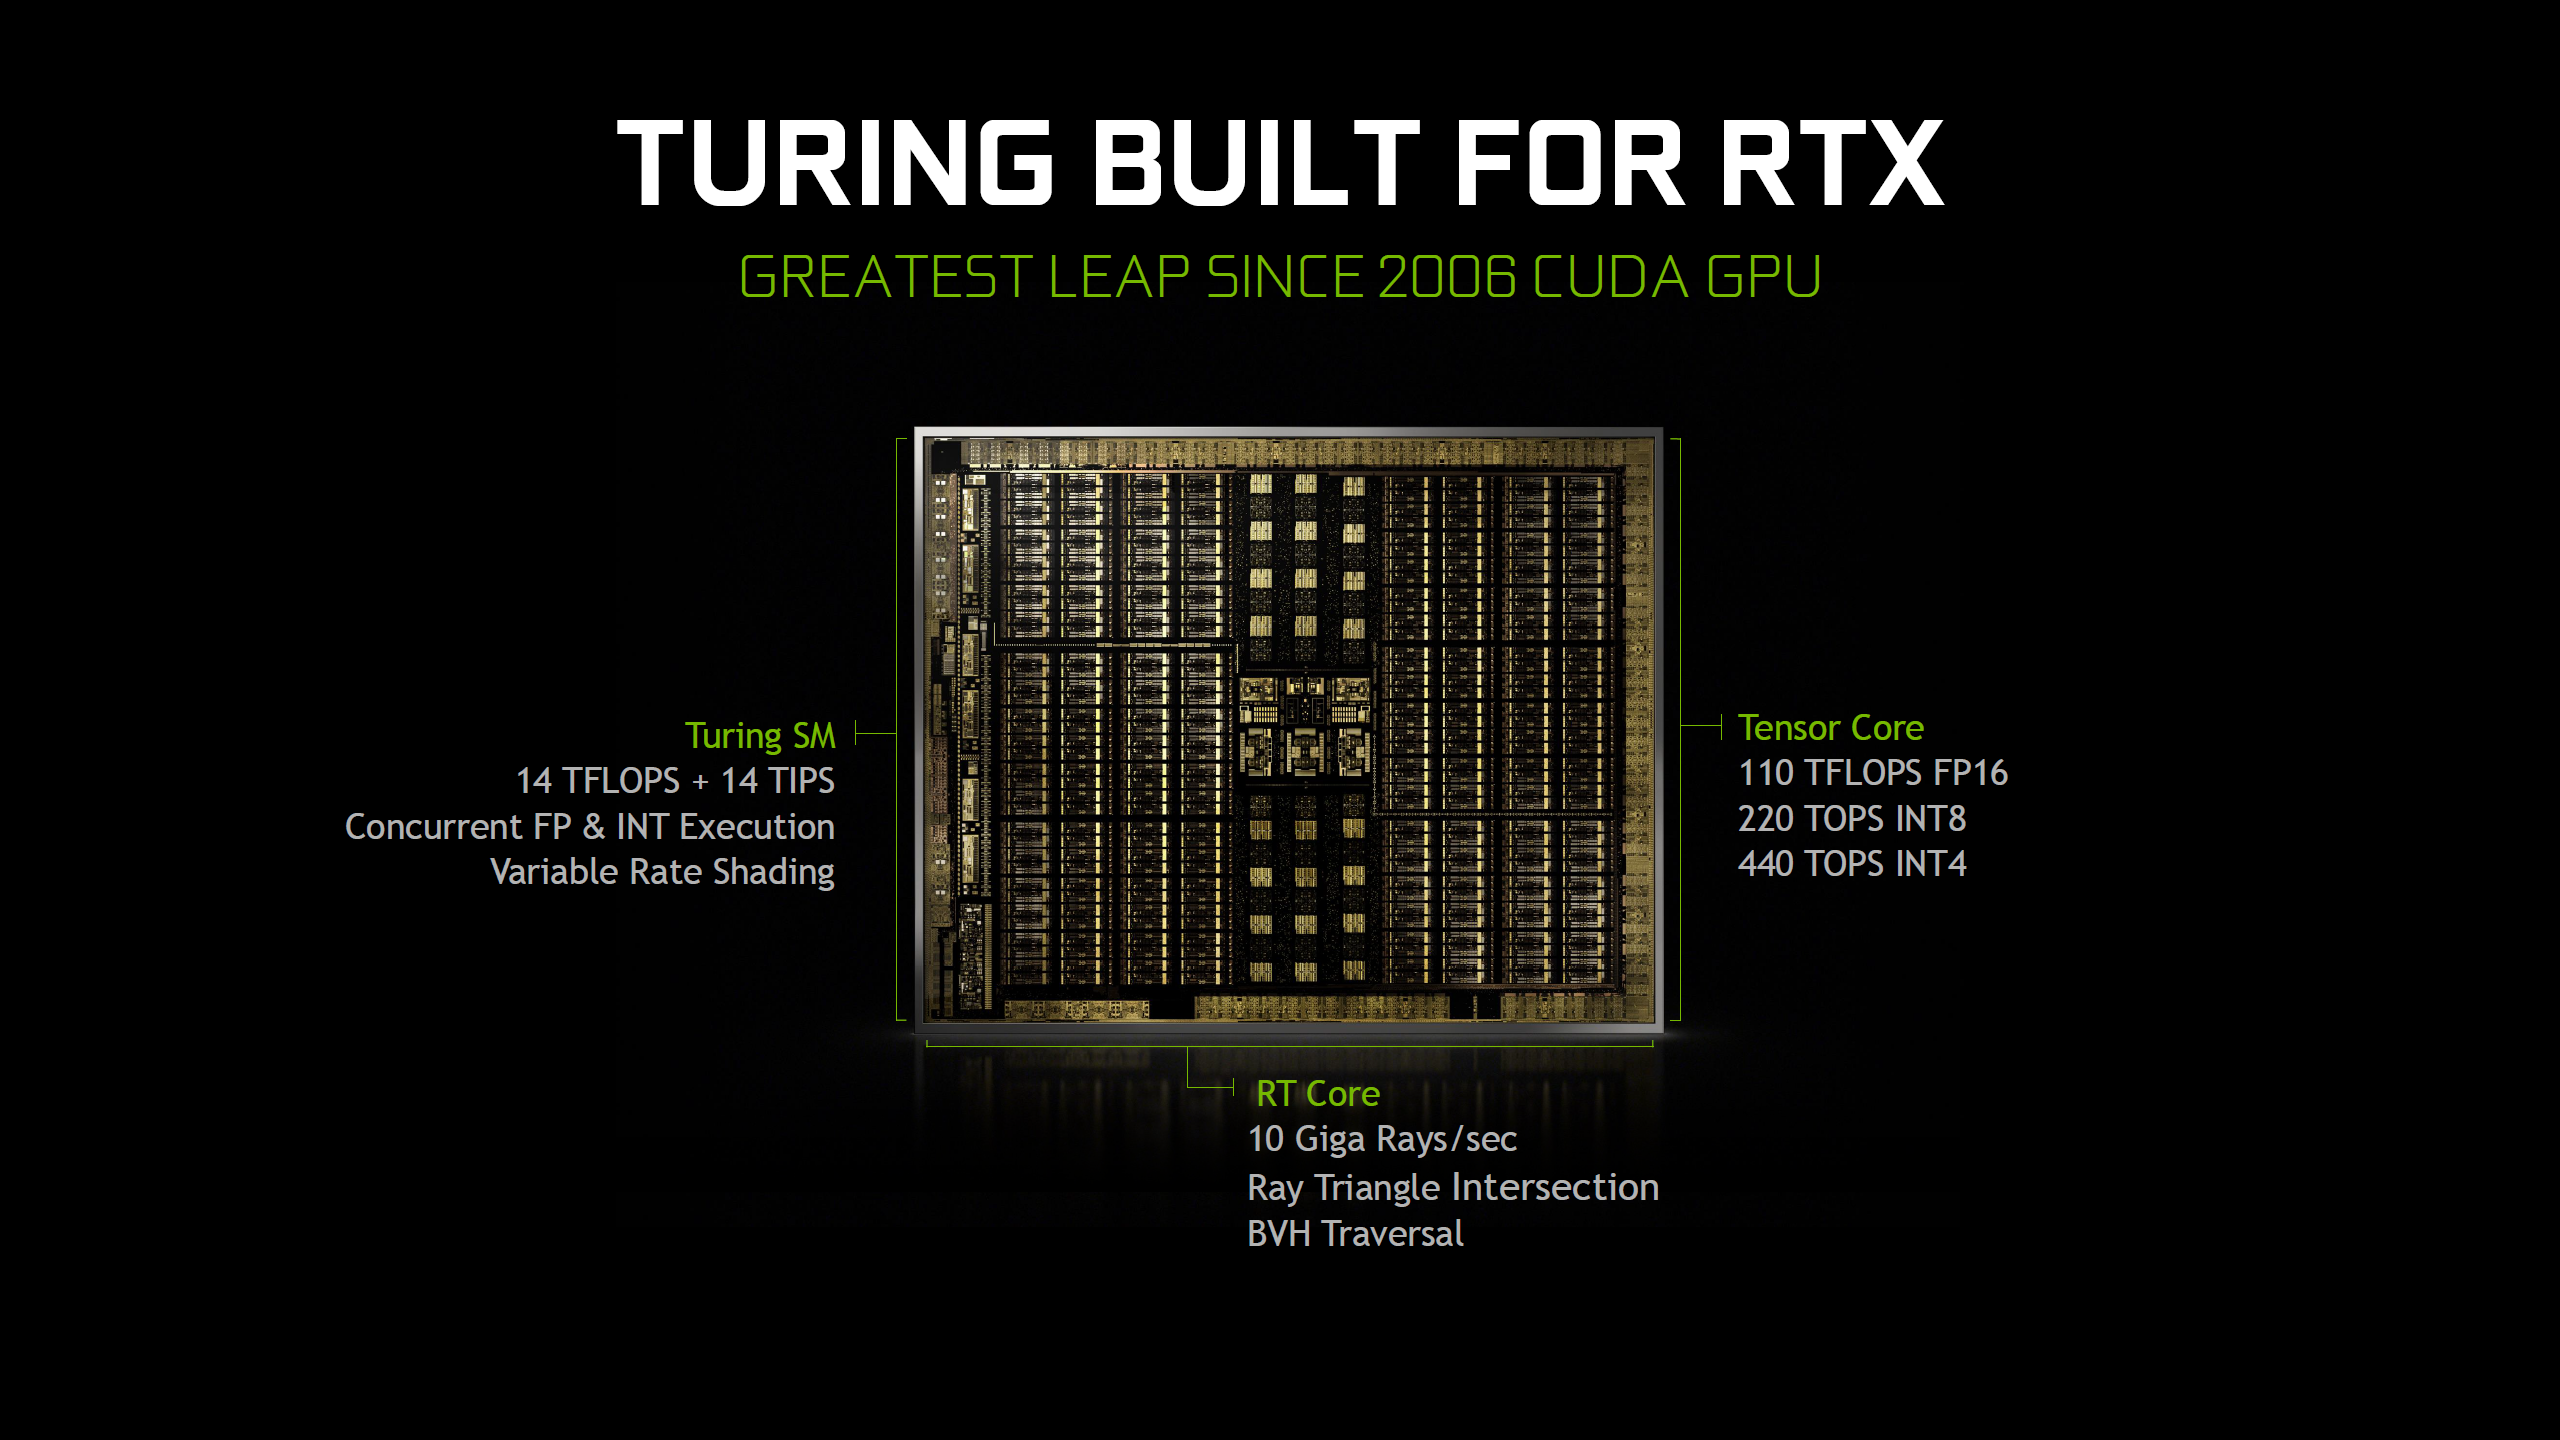 Nvidia Turing Tu102 Gpu For Geforce Rtx 2080 Ti Has 50 Better Per Playstation 4 Block Diagram The 72 Streaming Multiprocessors Sm Featuring 64 Cuda Cores Each Full Die Features 4608 While